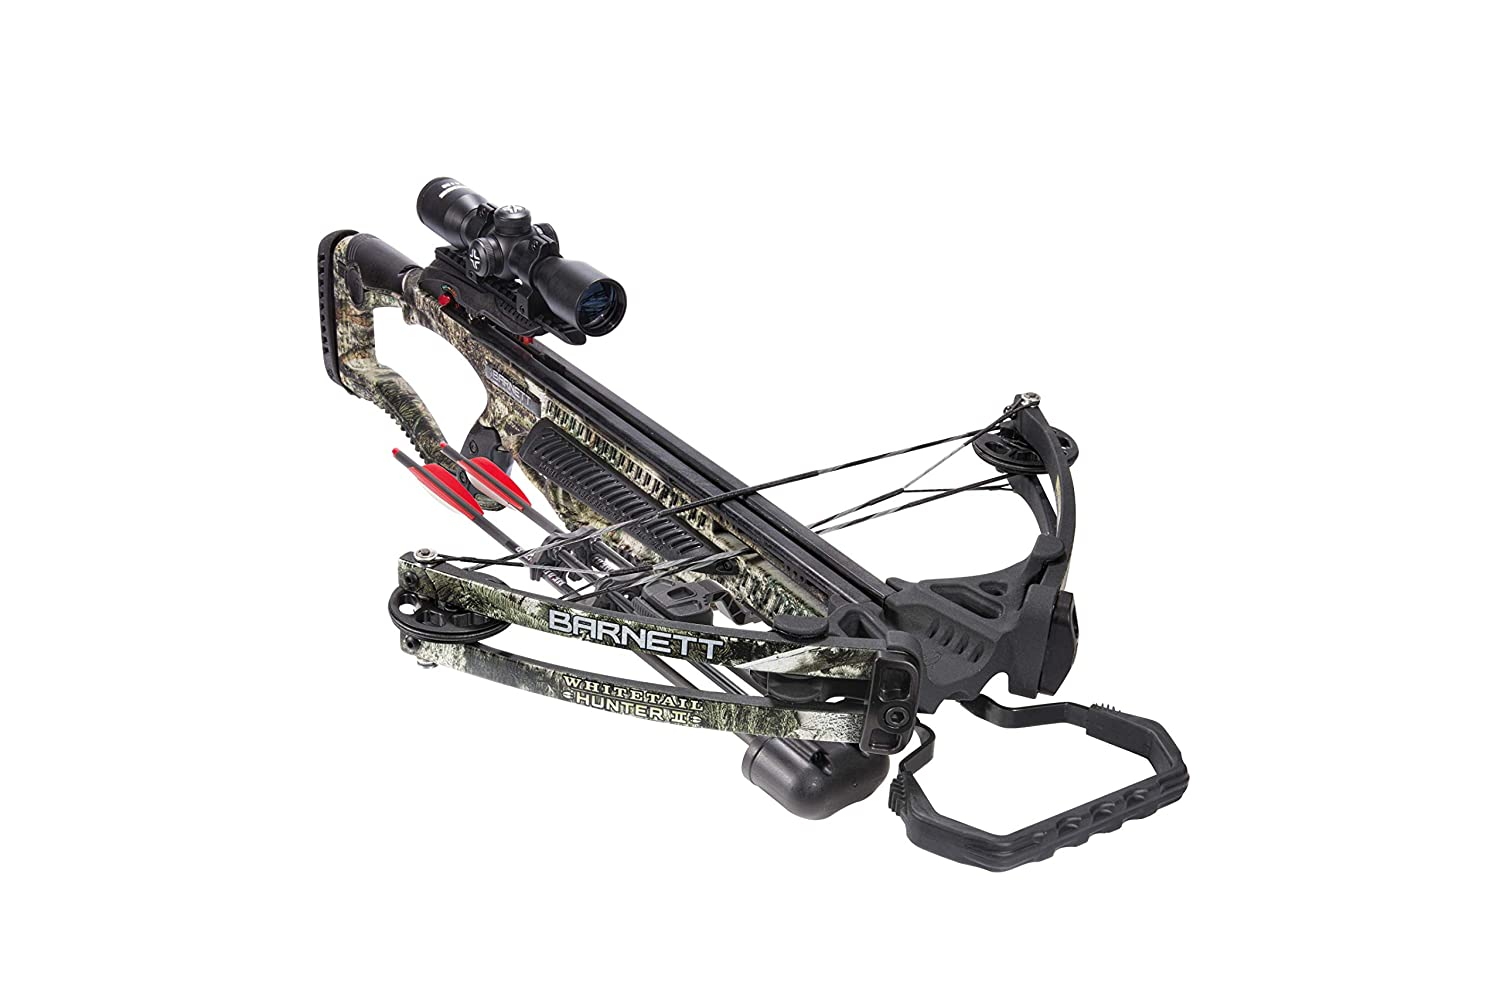 Top 10 Best Crossbow Under $500 Reviews in 2020 2